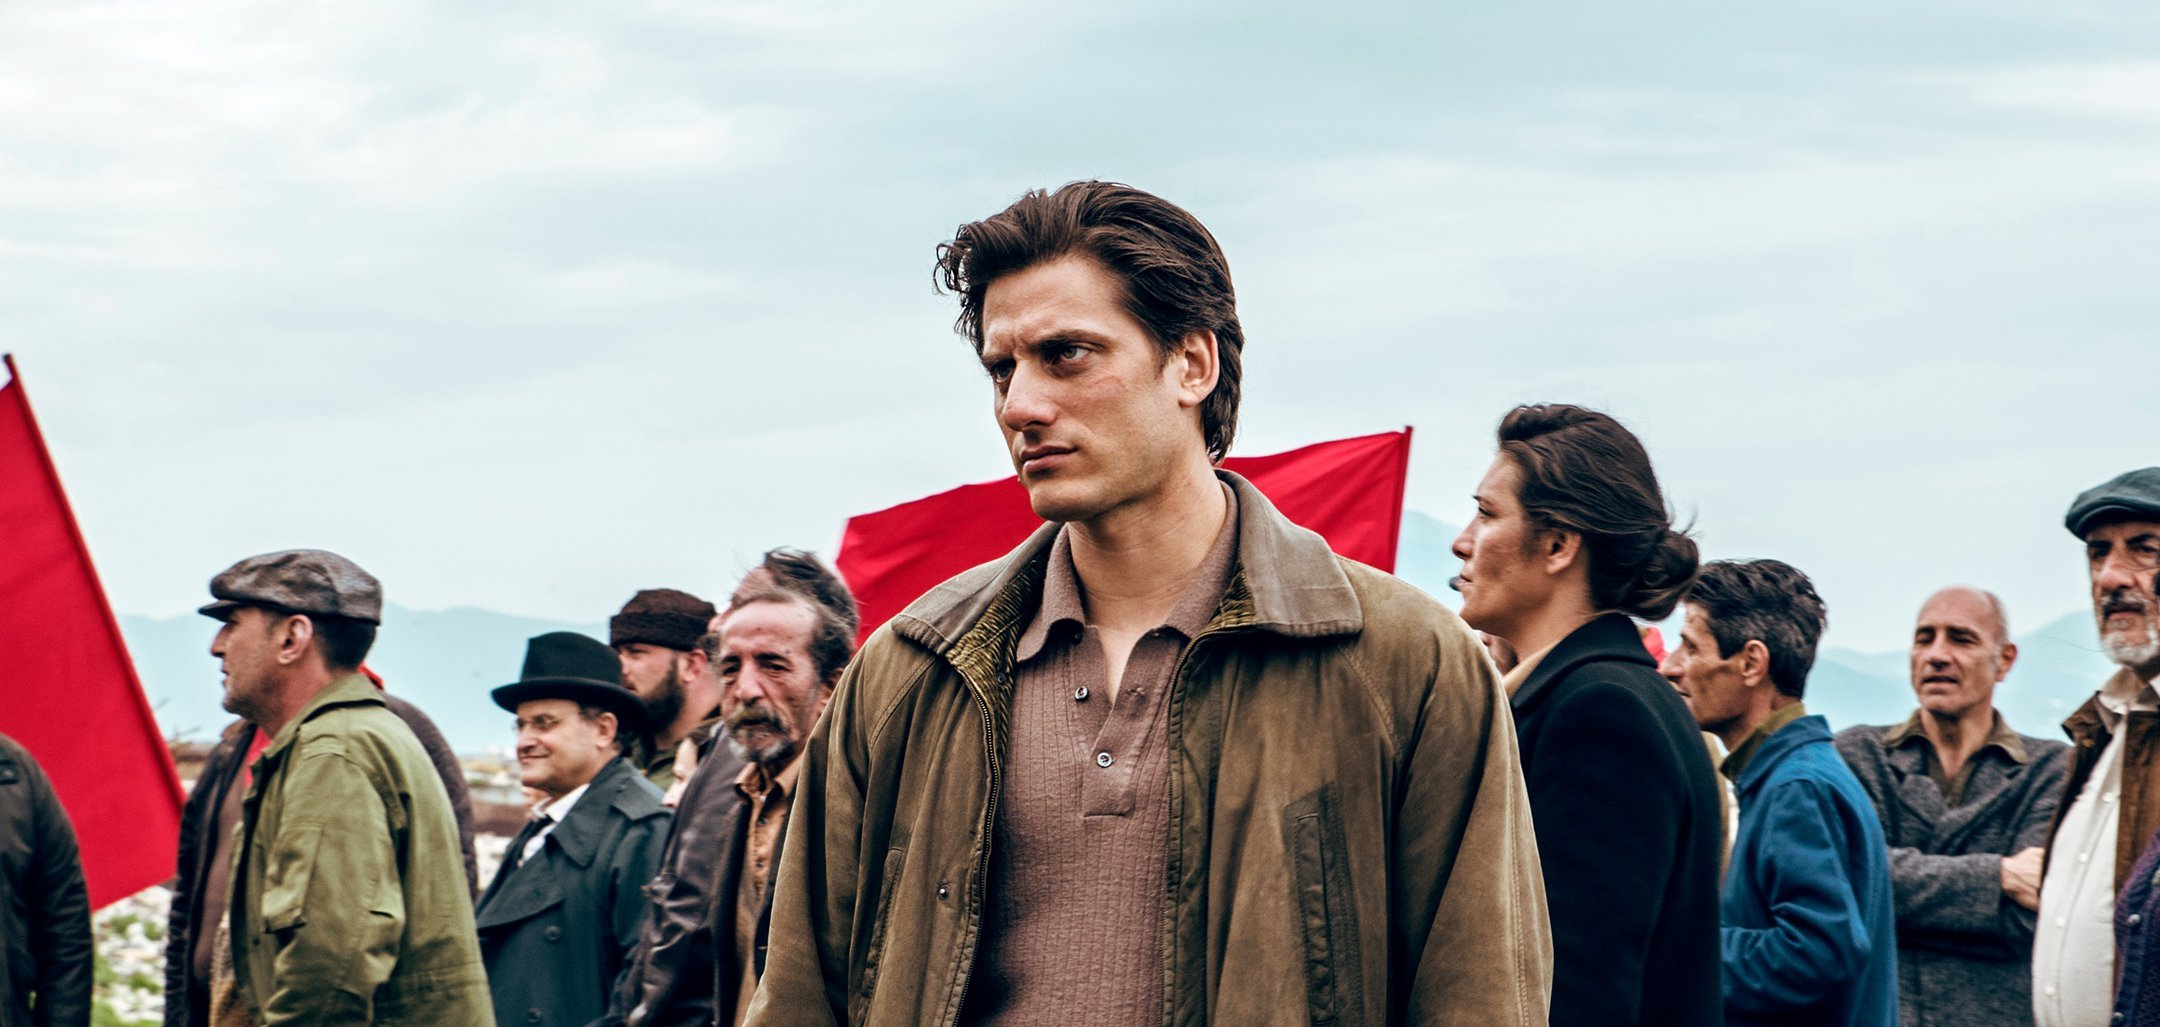 Luca Marinelli as titular character from Martin Eden, standing in front of a protesting crowd, some holding red flags